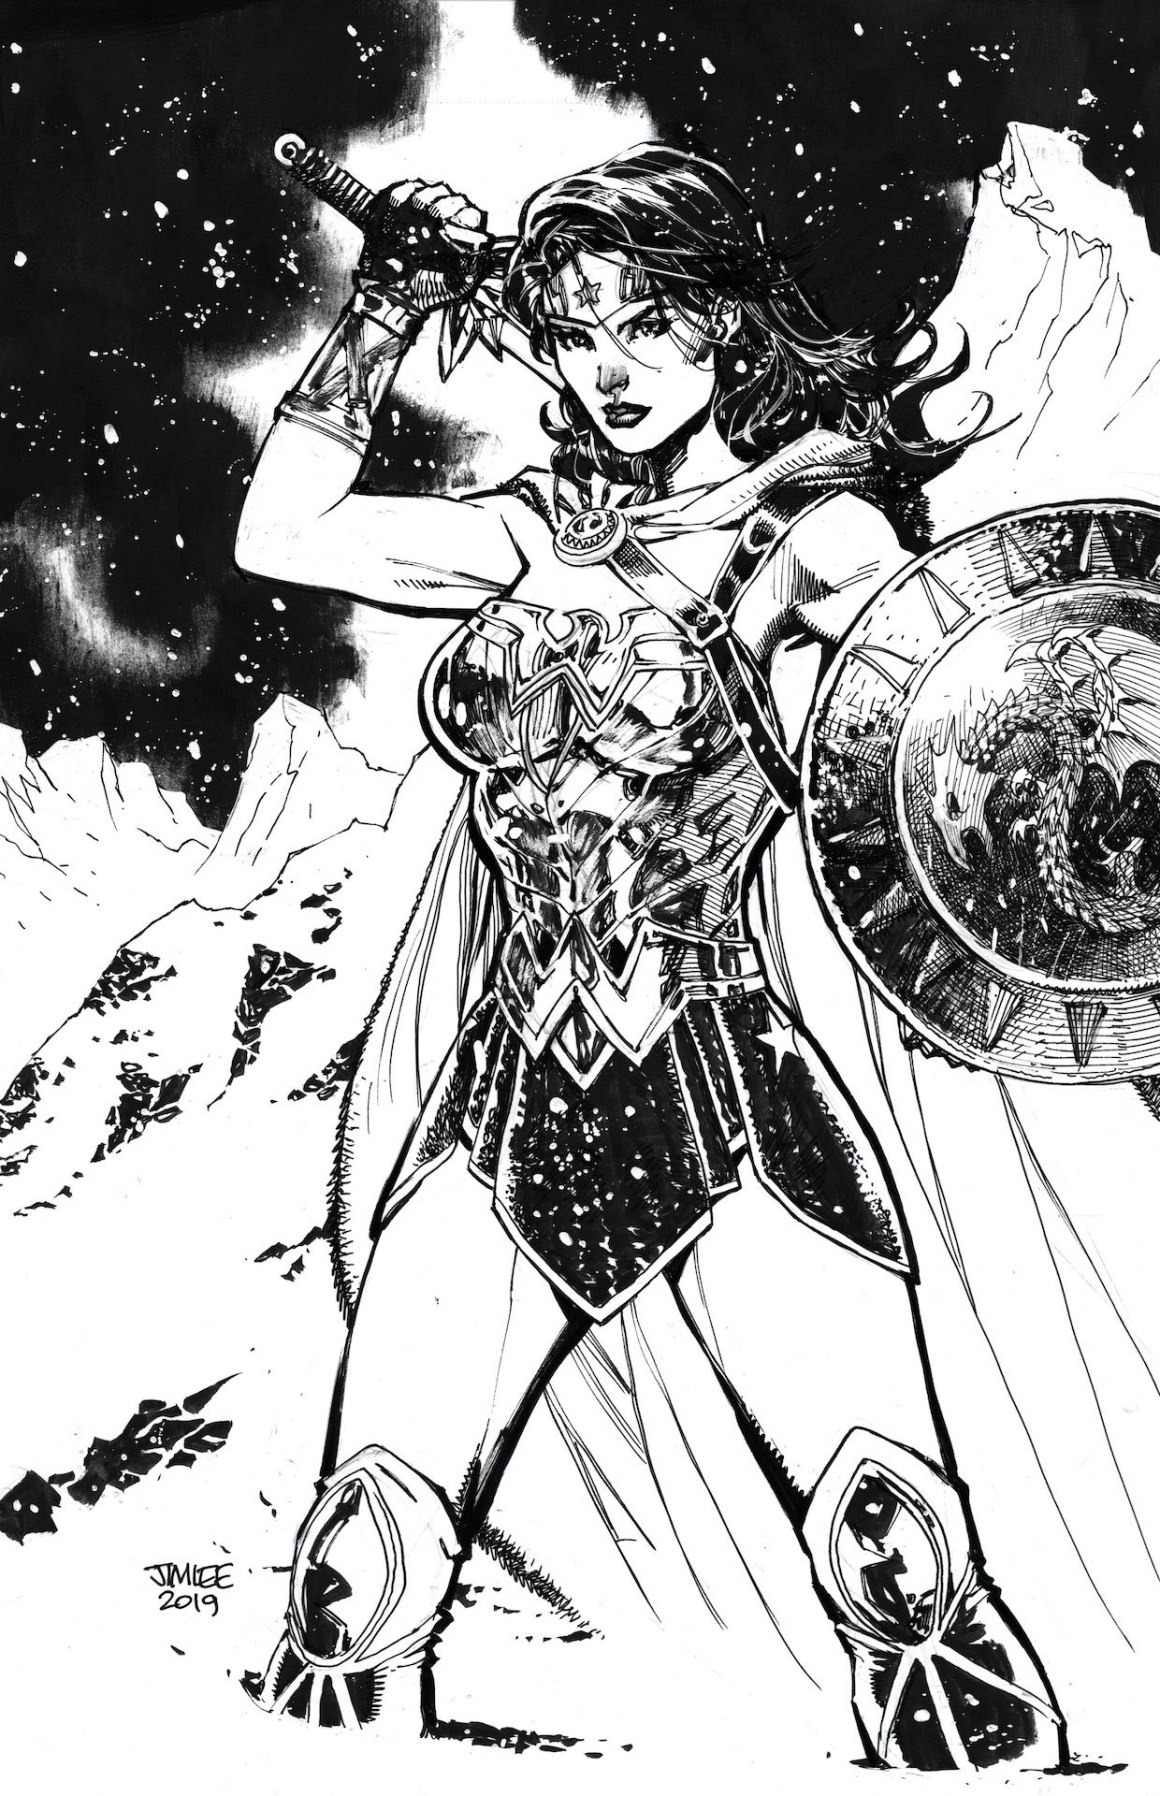 Variant cover by Jim Lee for Wonder Woman #759. Photo: DC Comics